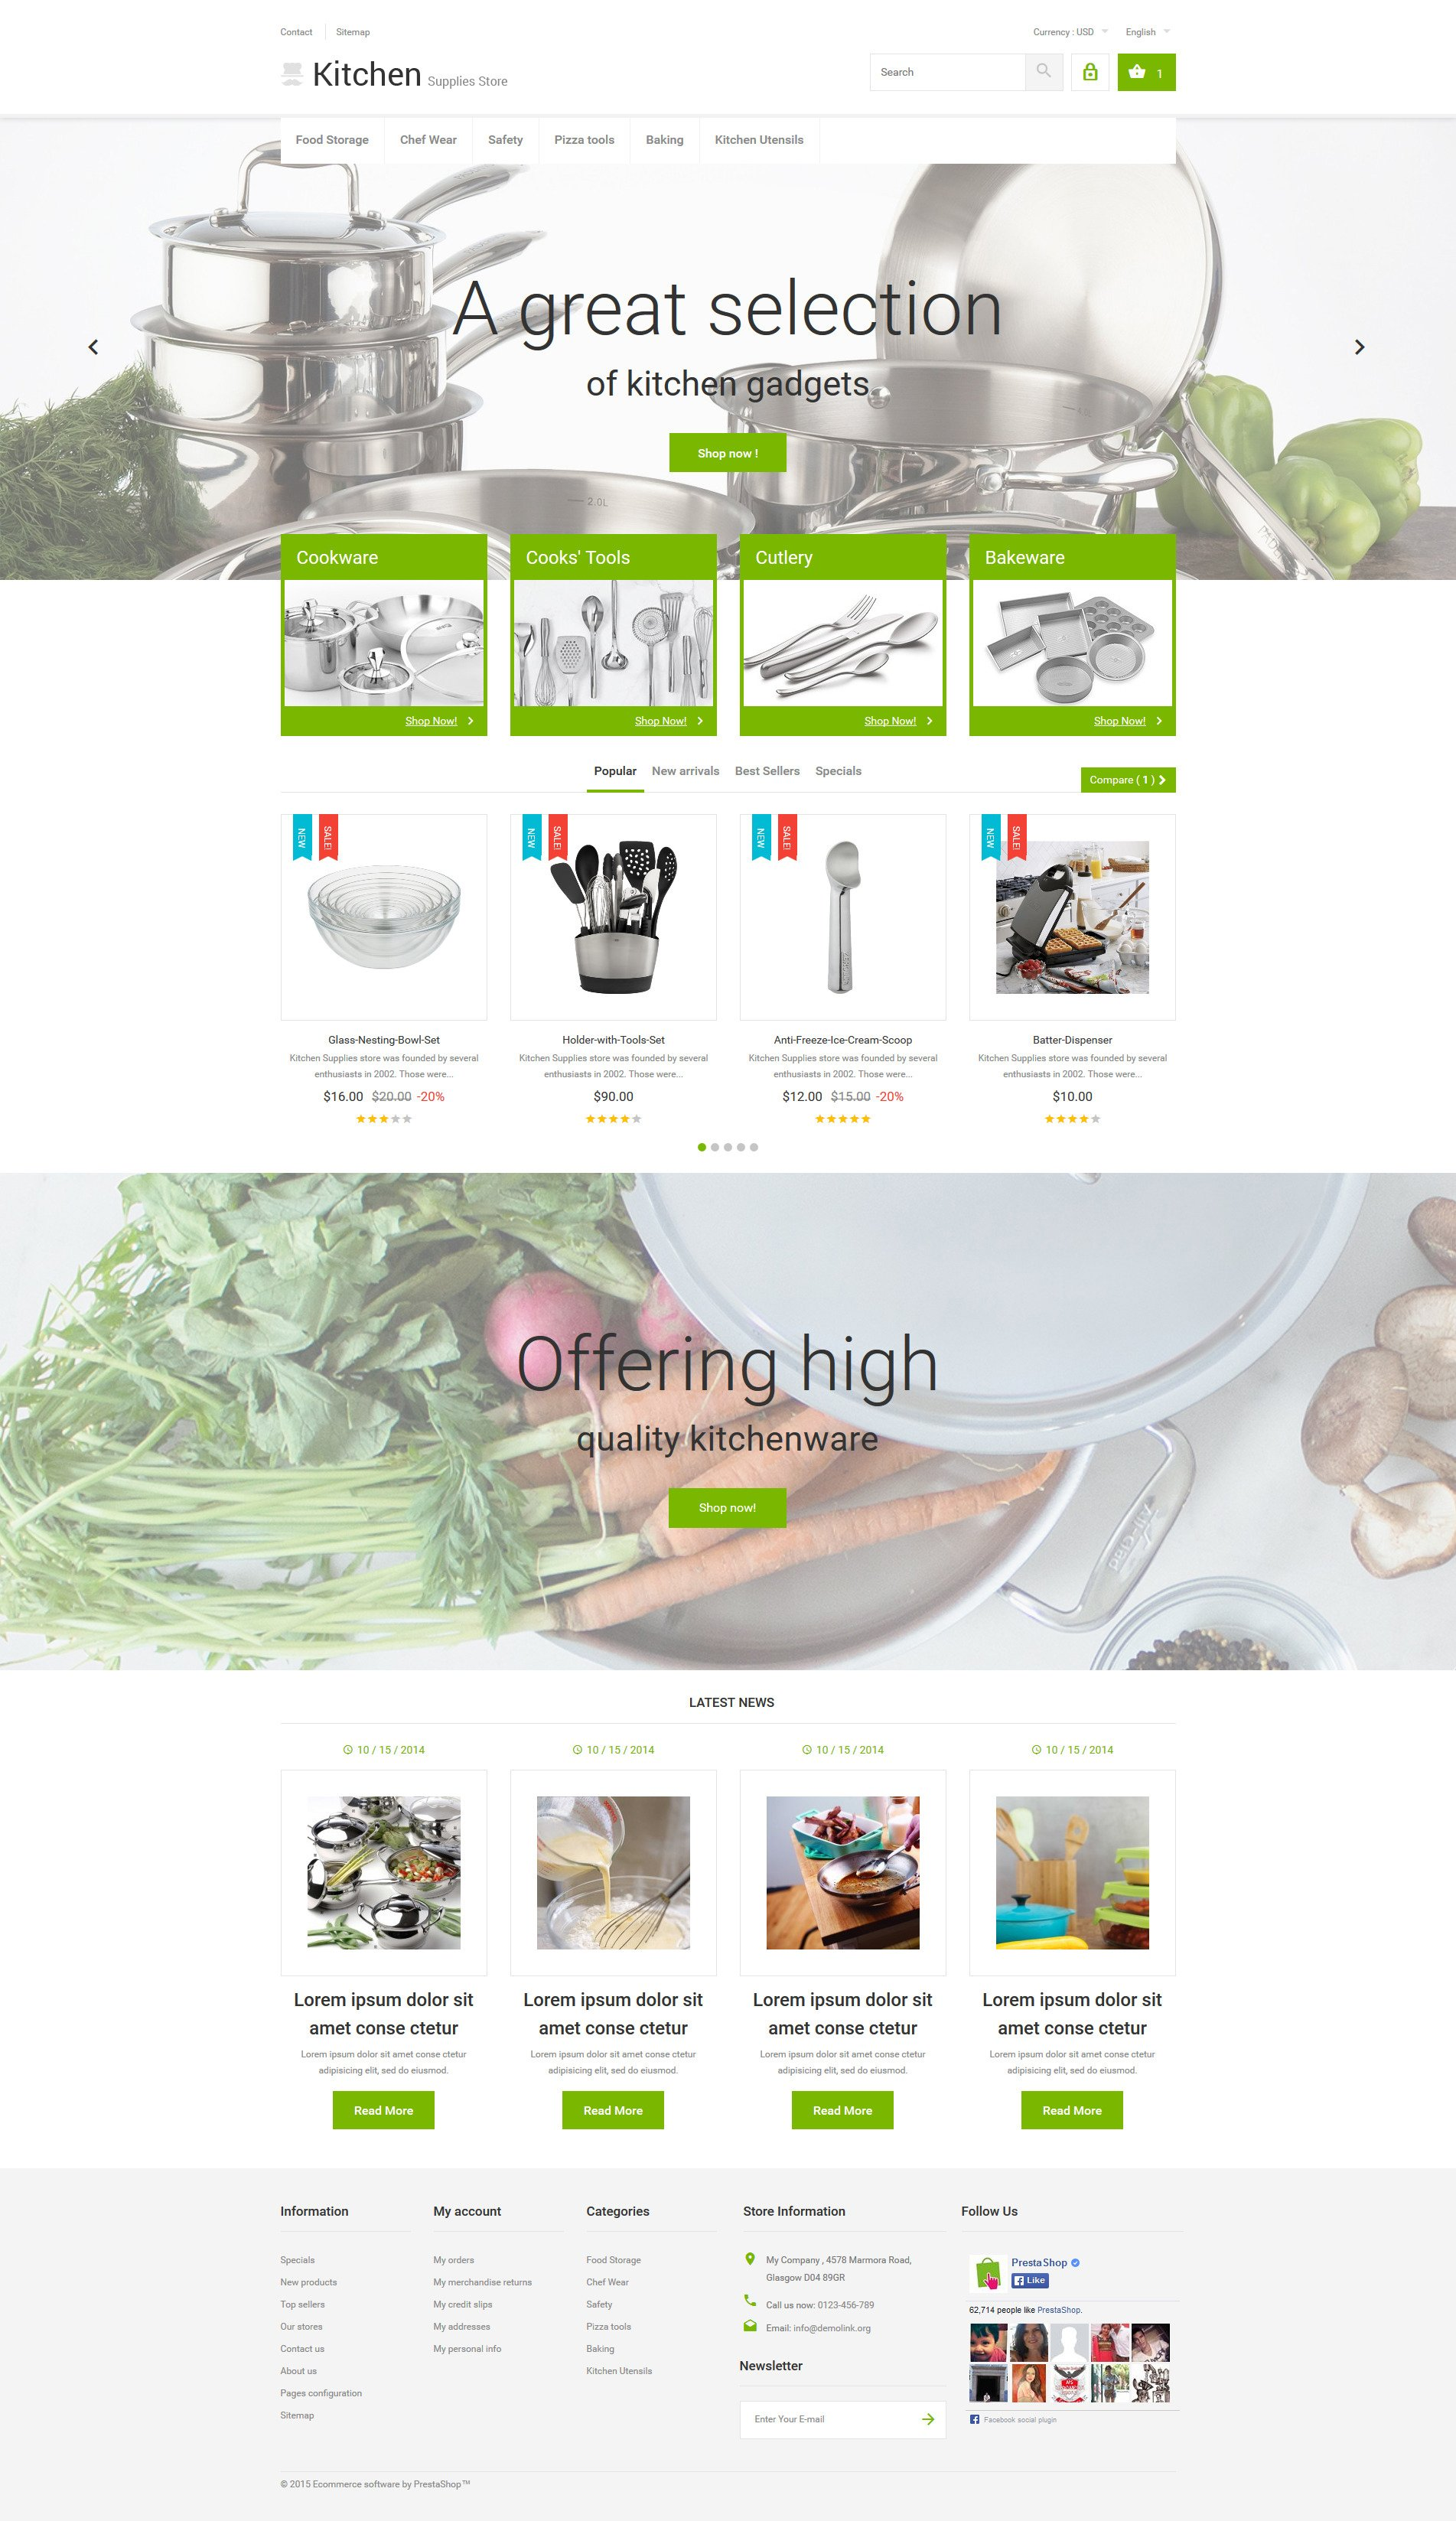 The Kuki Cheif PrestaShop Design 53963, one of the best PrestaShop themes of its kind (interior & furniture, most popular), also known as kuki cheif PrestaShop template, cook PrestaShop template, cookware PrestaShop template, kitchen PrestaShop template, supplies store PrestaShop template, glassware PrestaShop template, tableware PrestaShop template, the PrestaShop template, dishes PrestaShop template, tinware PrestaShop template, kitchen PrestaShop template, utensils PrestaShop template, tea PrestaShop template, things PrestaShop template, pottery PrestaShop template, dishware PrestaShop template, houseware PrestaShop template, plates PrestaShop template, dishes PrestaShop template, dinnerware PrestaShop template, kitchenware and related with kuki cheif, cook, cookware, kitchen, supplies store, glassware, tableware, the, dishes, tinware, kitchen, utensils, tea, things, pottery, dishware, houseware, plates, dishes, dinnerware, kitchenware, etc.